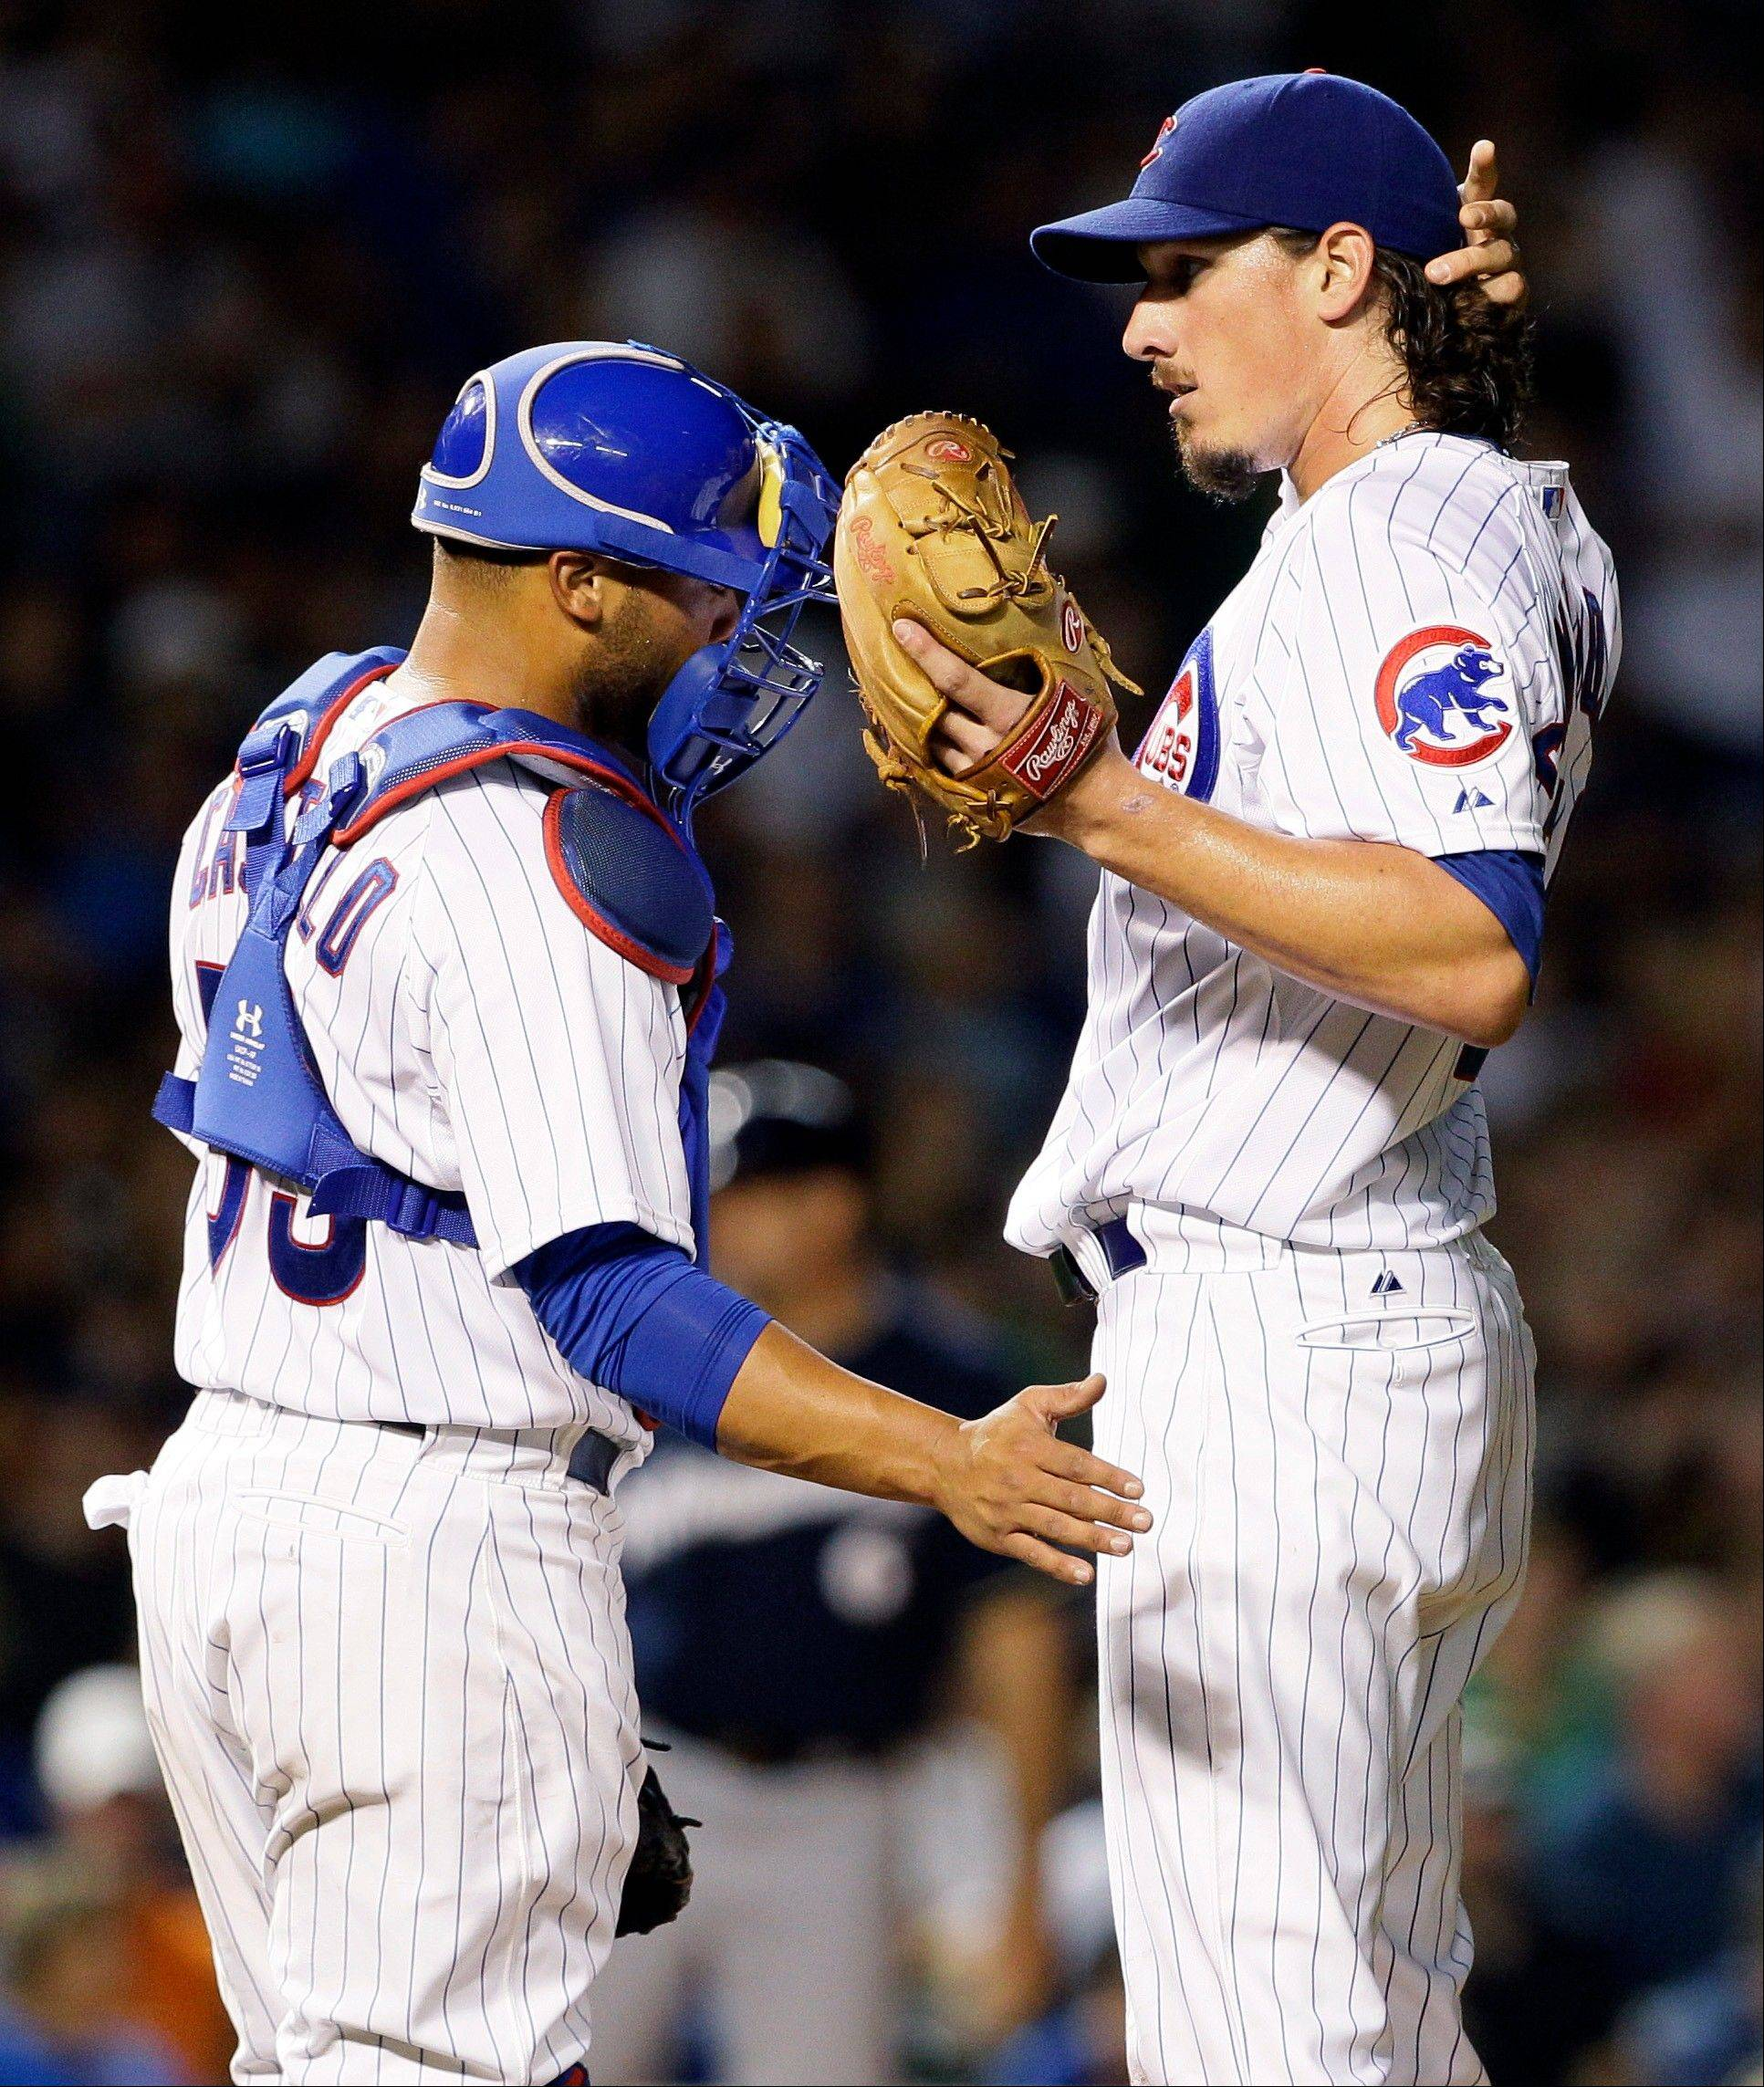 Chicago Cubs starter Jeff Samardzija, right, talks with catcher Welington Castillo during the seventh inning of a baseball game against the Milwaukee Brewers in Chicago, Wednesday.